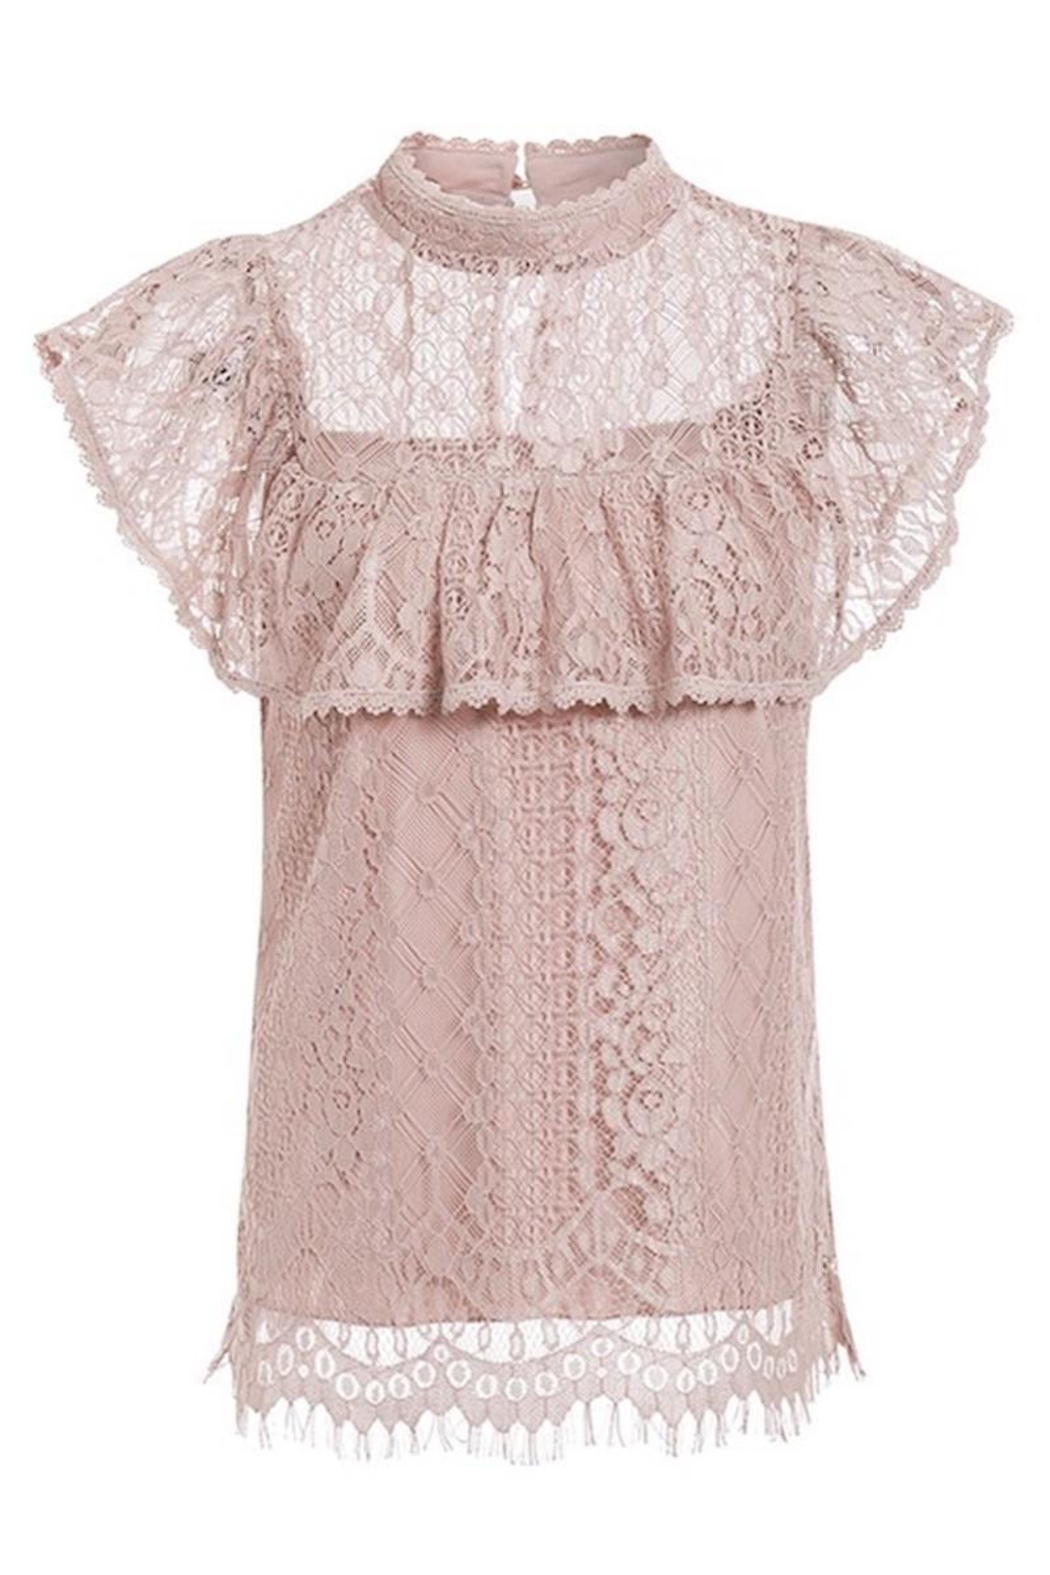 Esley Collection Blush Lace Detail Blouse - Back Cropped Image